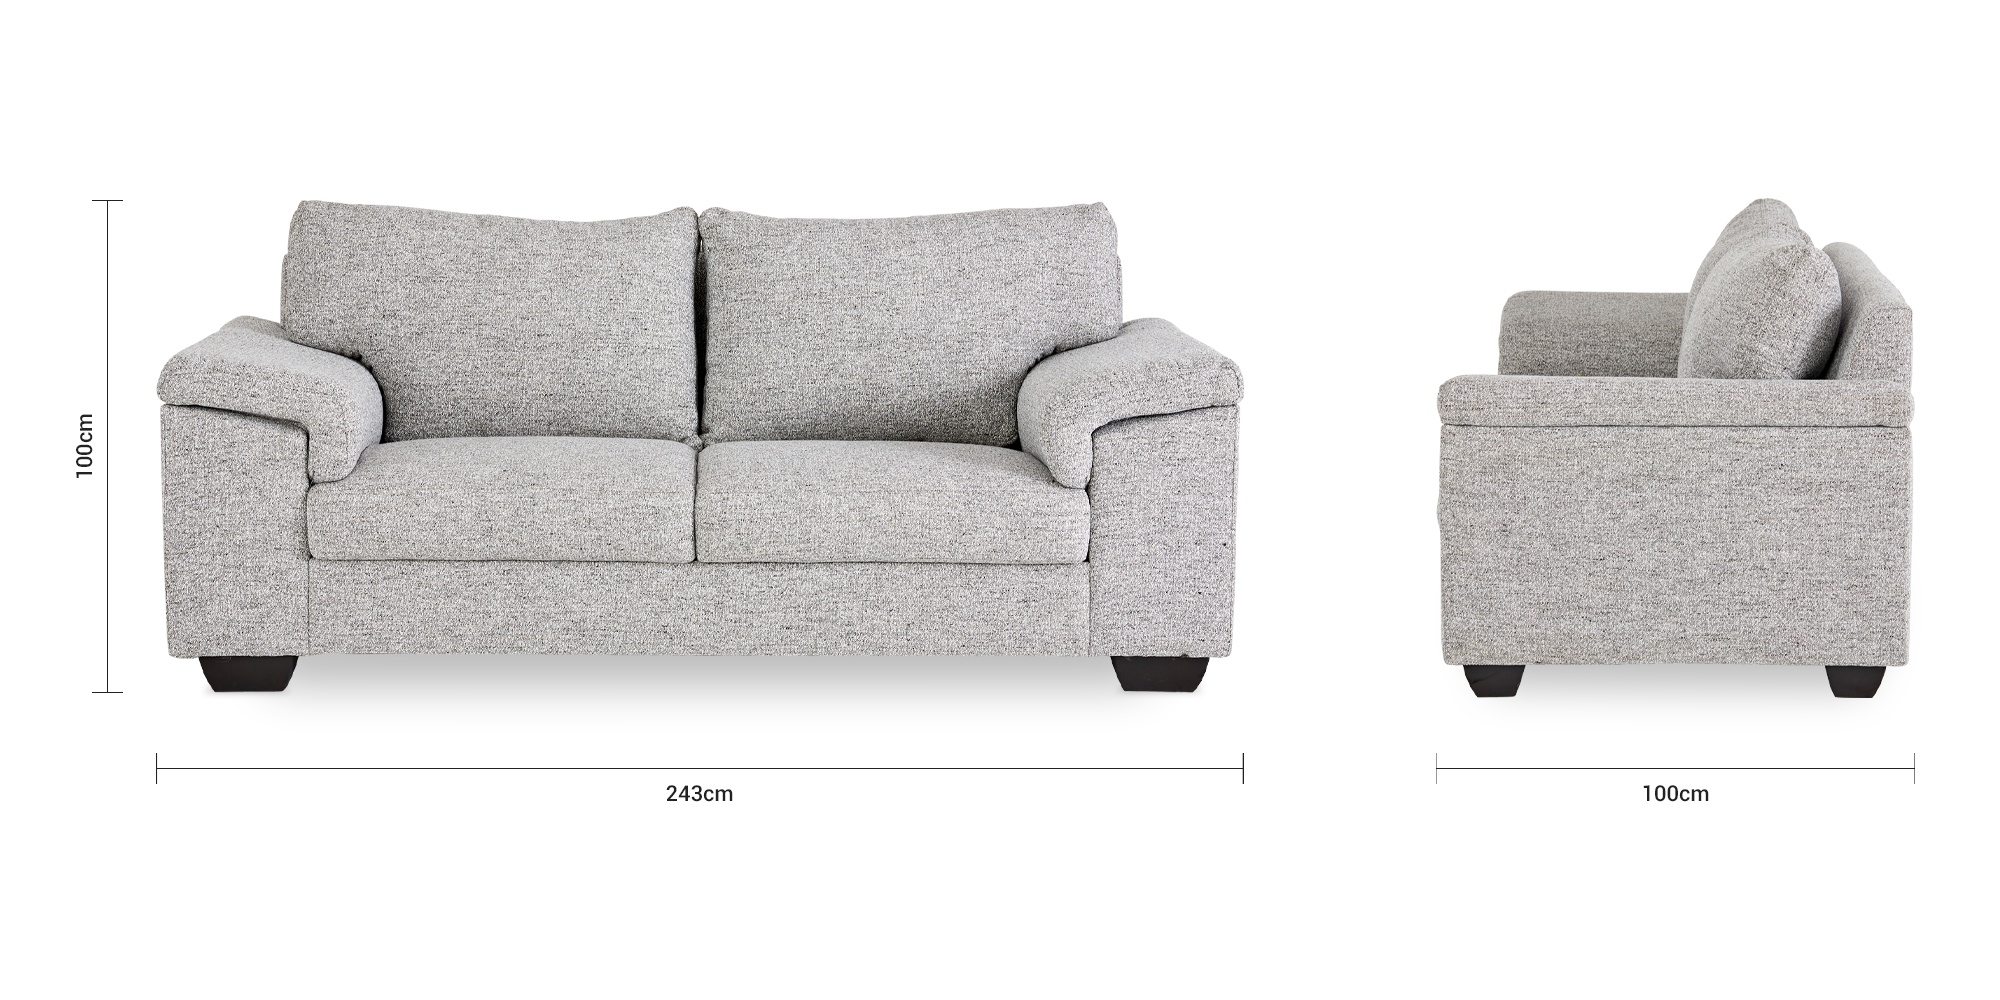 Bianca Fully Upholstered 3 Seater Couch